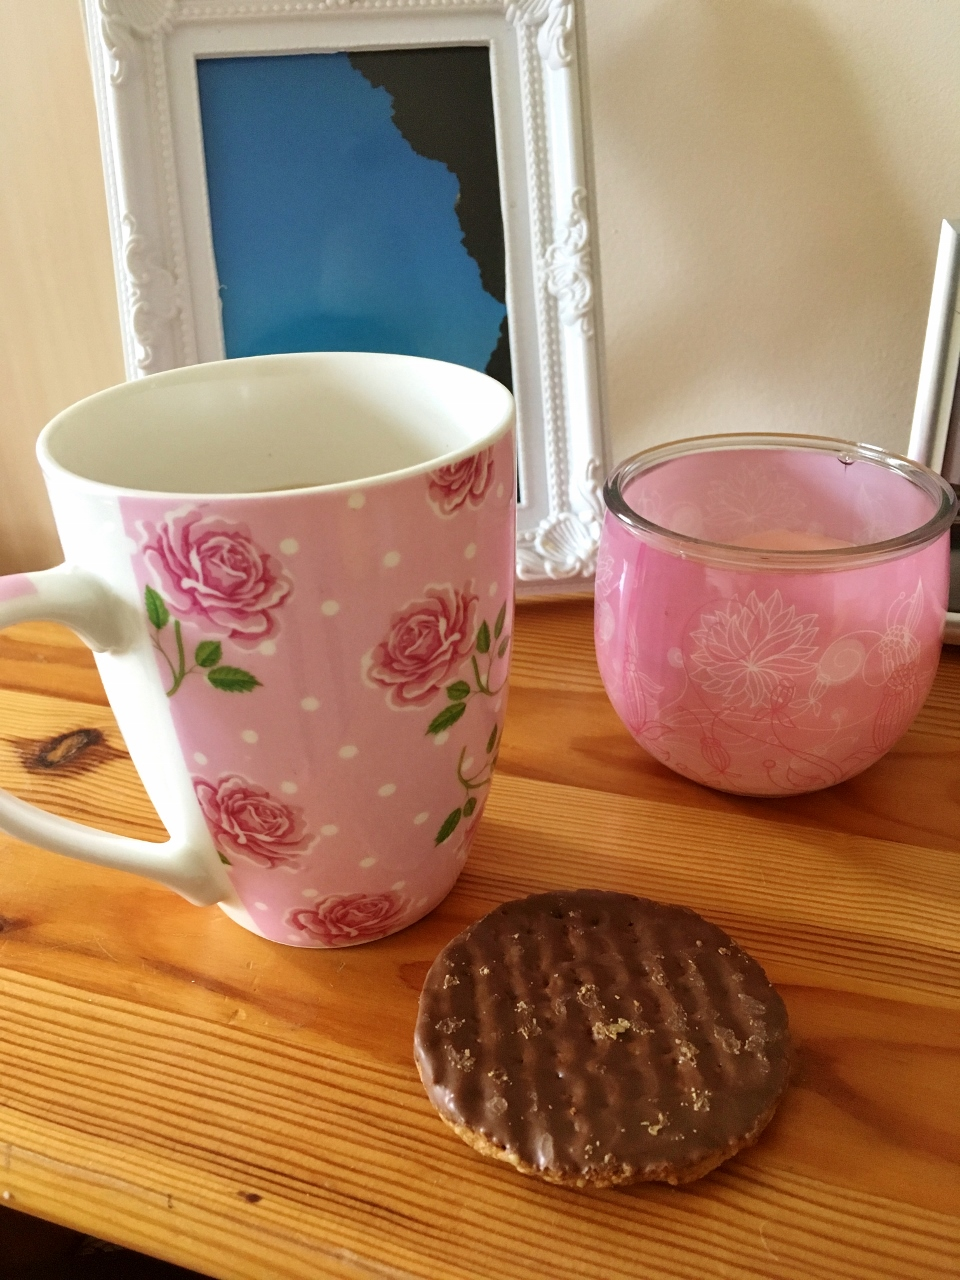 Tea and biscuit